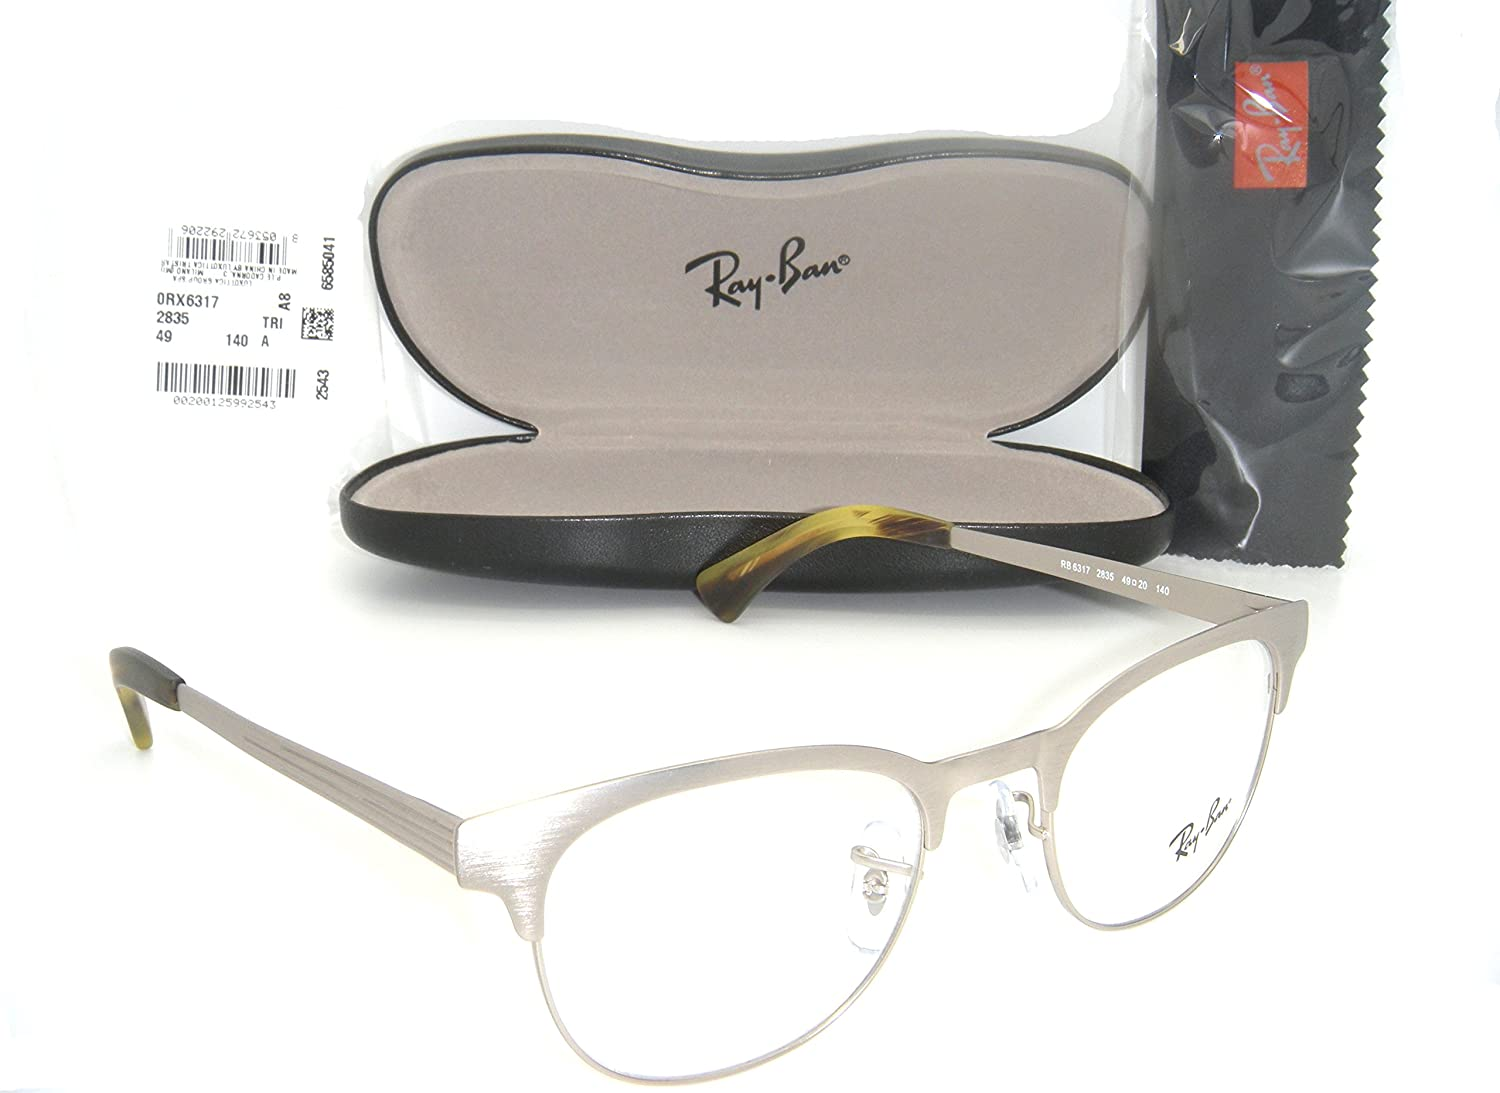 d8d11ea7d6 Ray-Ban Clubmaster EYEGLASSES RB 6317 2835 49MM Matte Silver RX READY  FRAME  Amazon.ca  Shoes   Handbags